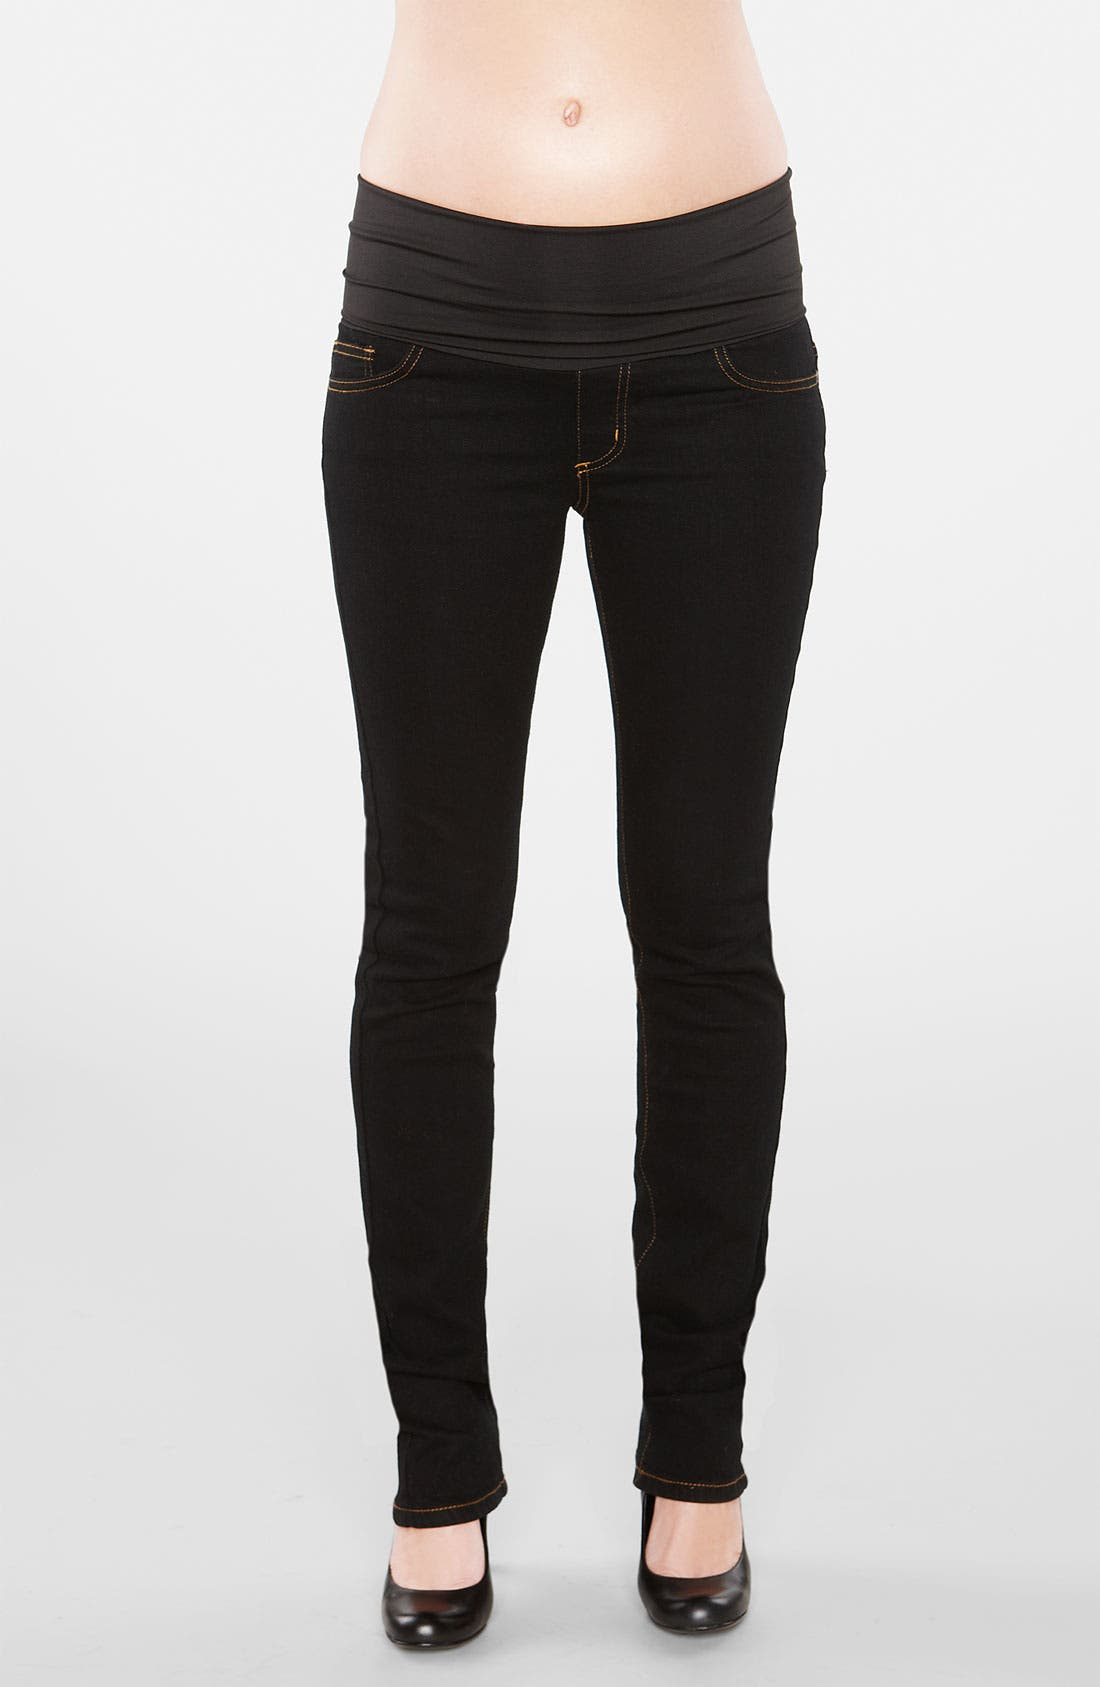 Alternate Image 1 Selected - Maternal America Straight Leg Stretch Maternity Jeans